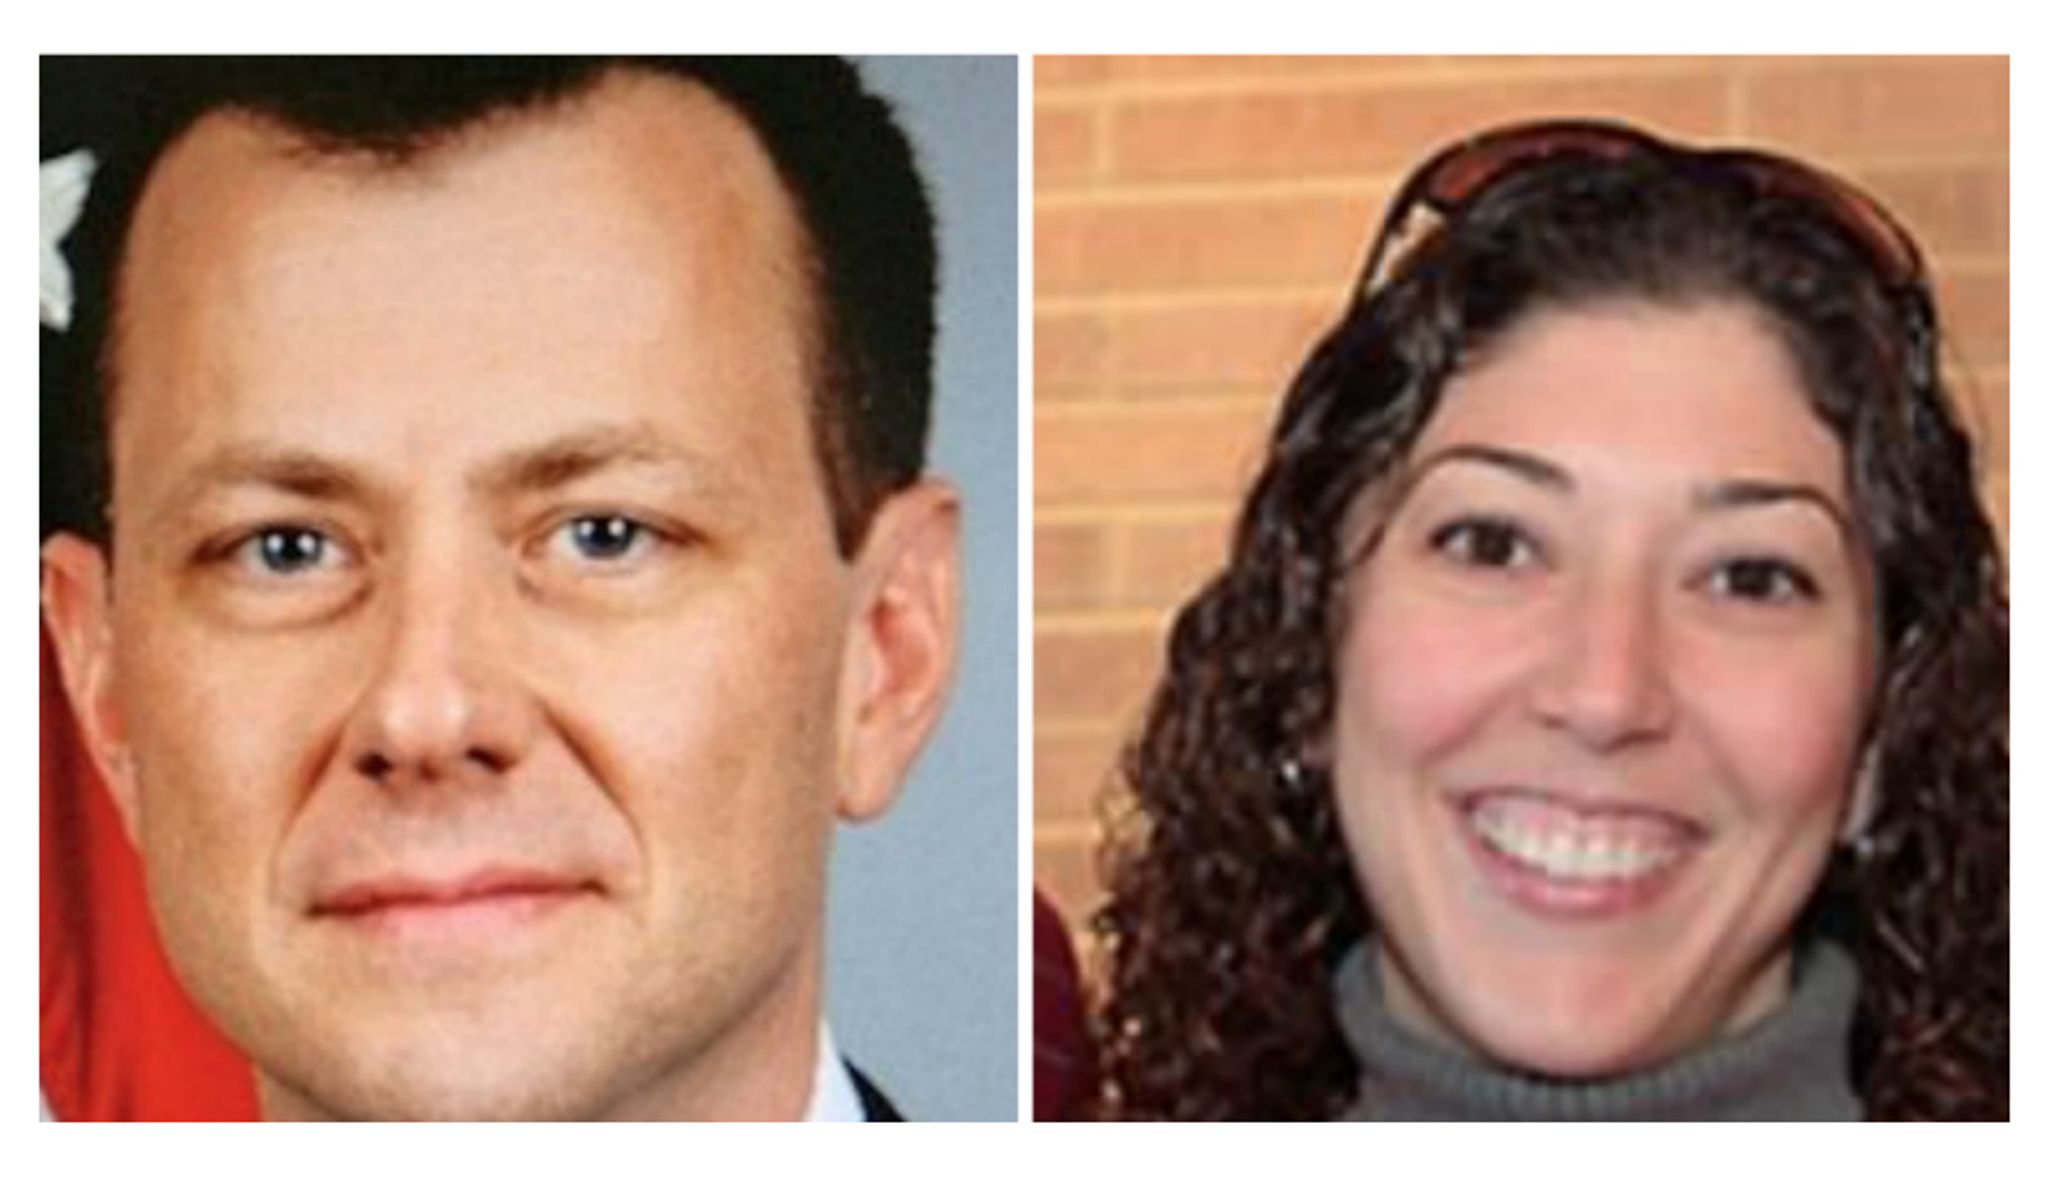 Lisa Page, FBI lawyer who texted with Peter Strzok, subpoenaed by House Judiciary Committee